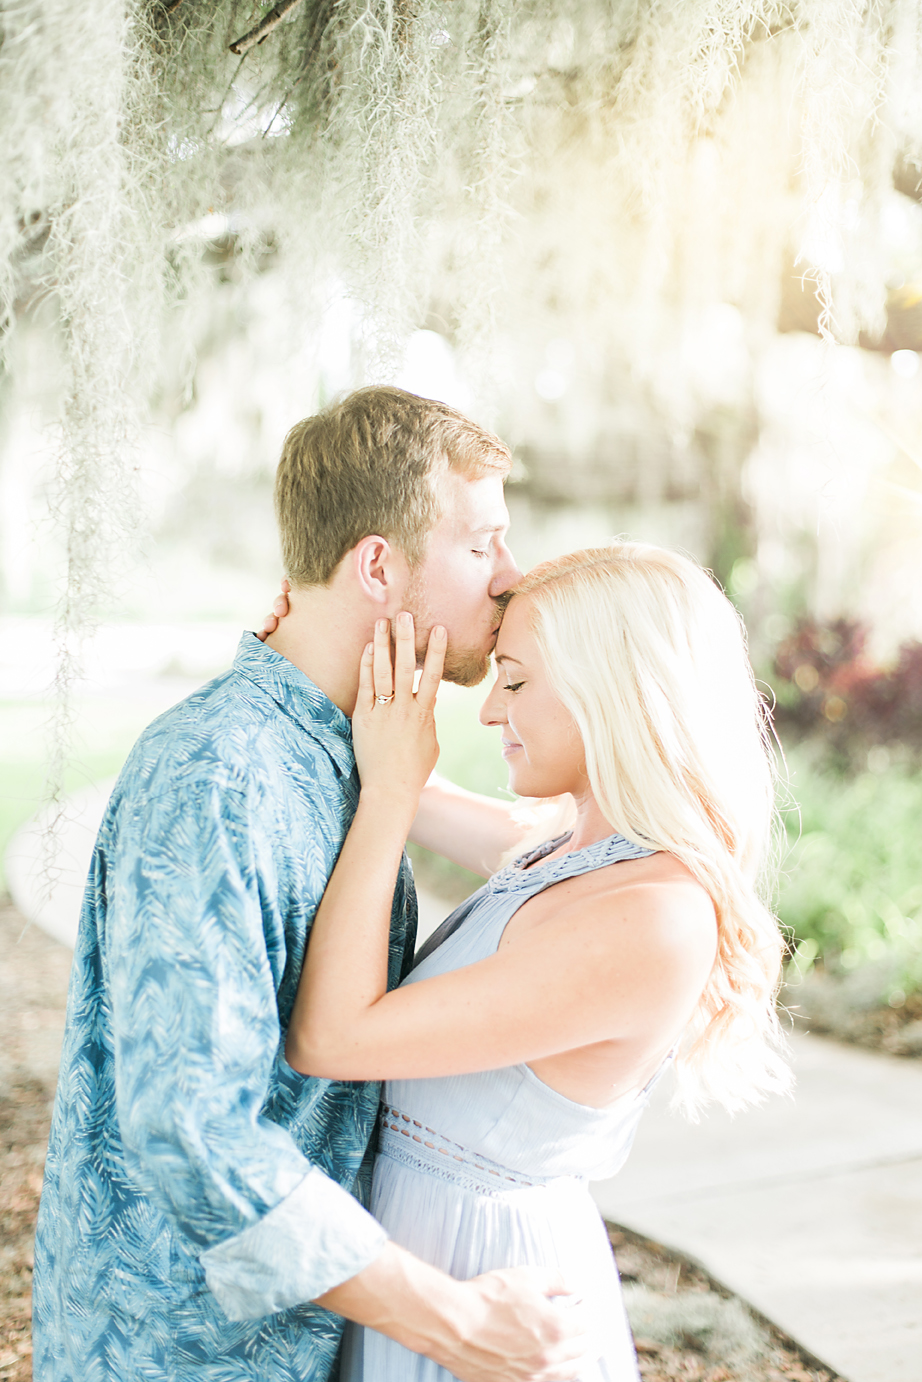 Samantha + Holden - Emily & Co. Photography - Destination Wedding Photography - Sarasota Engagement Photography - WEB (43).jpg